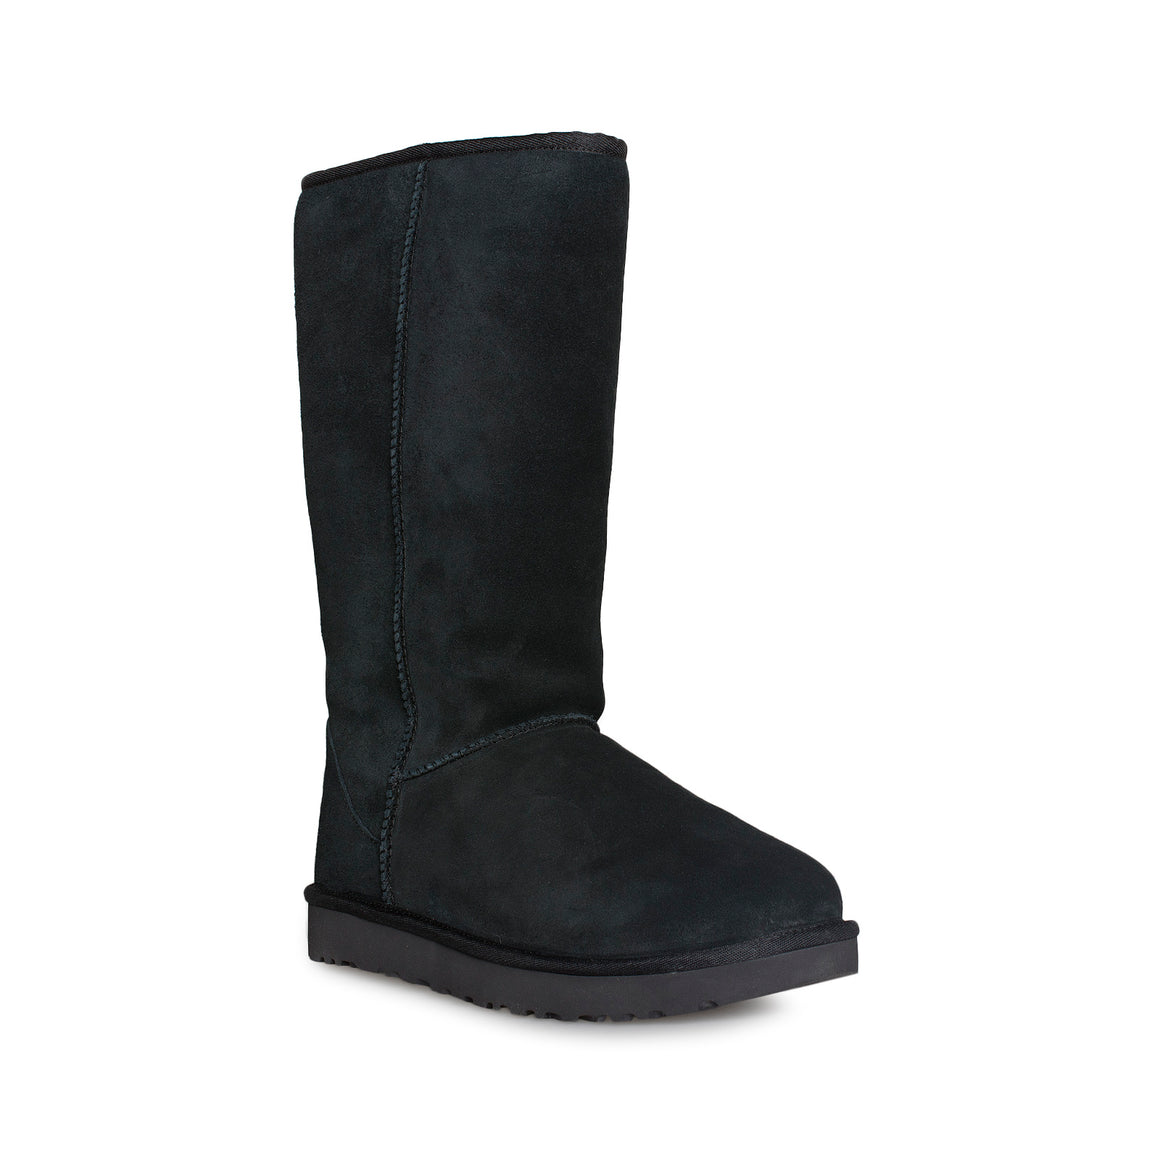 UGG Classic Tall II Animal Black Boots - Women's